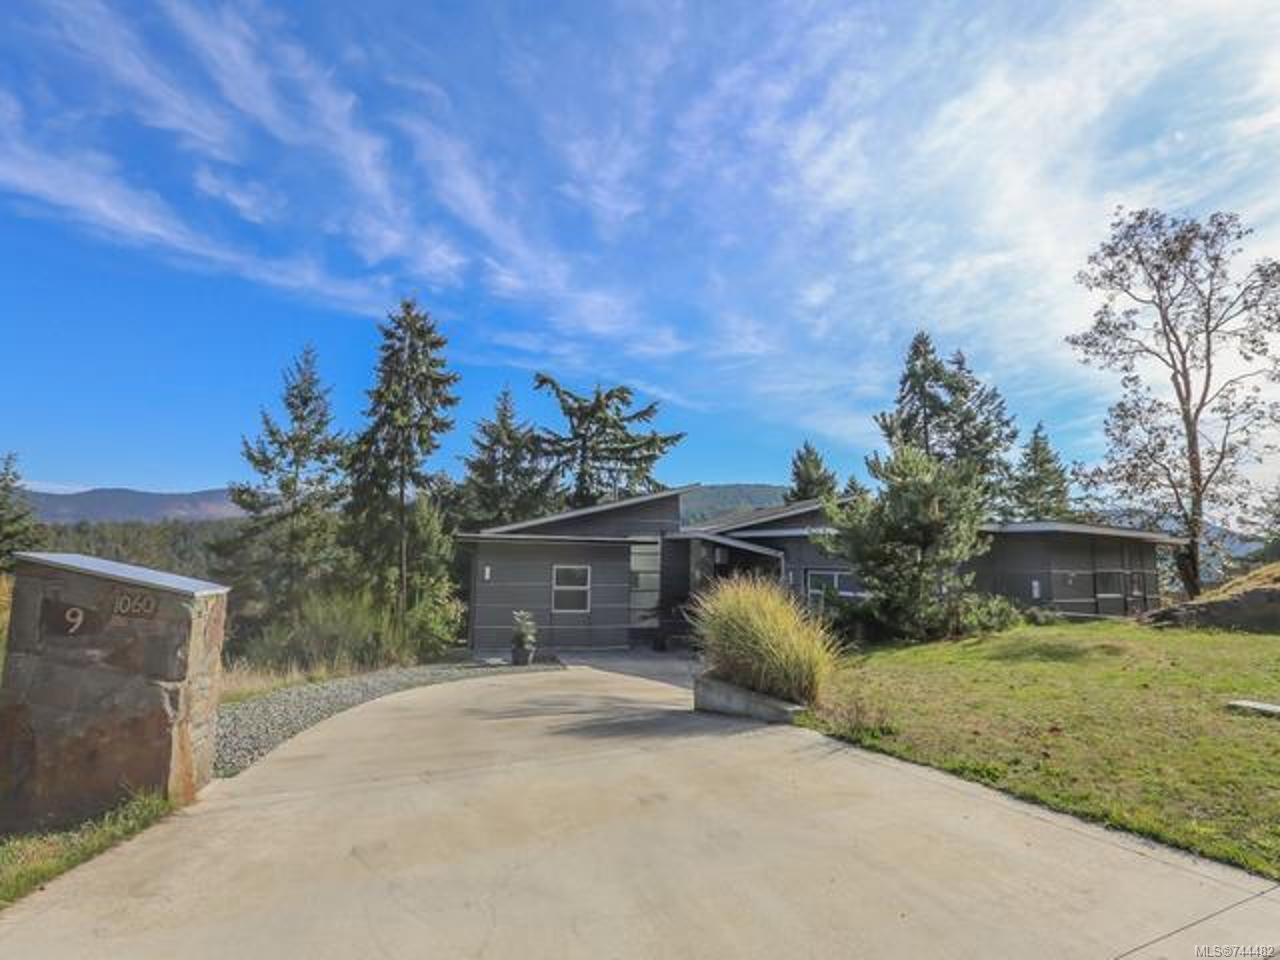 FEATURED LISTING: 9 - 1060 SHORE PINE Close DUNCAN